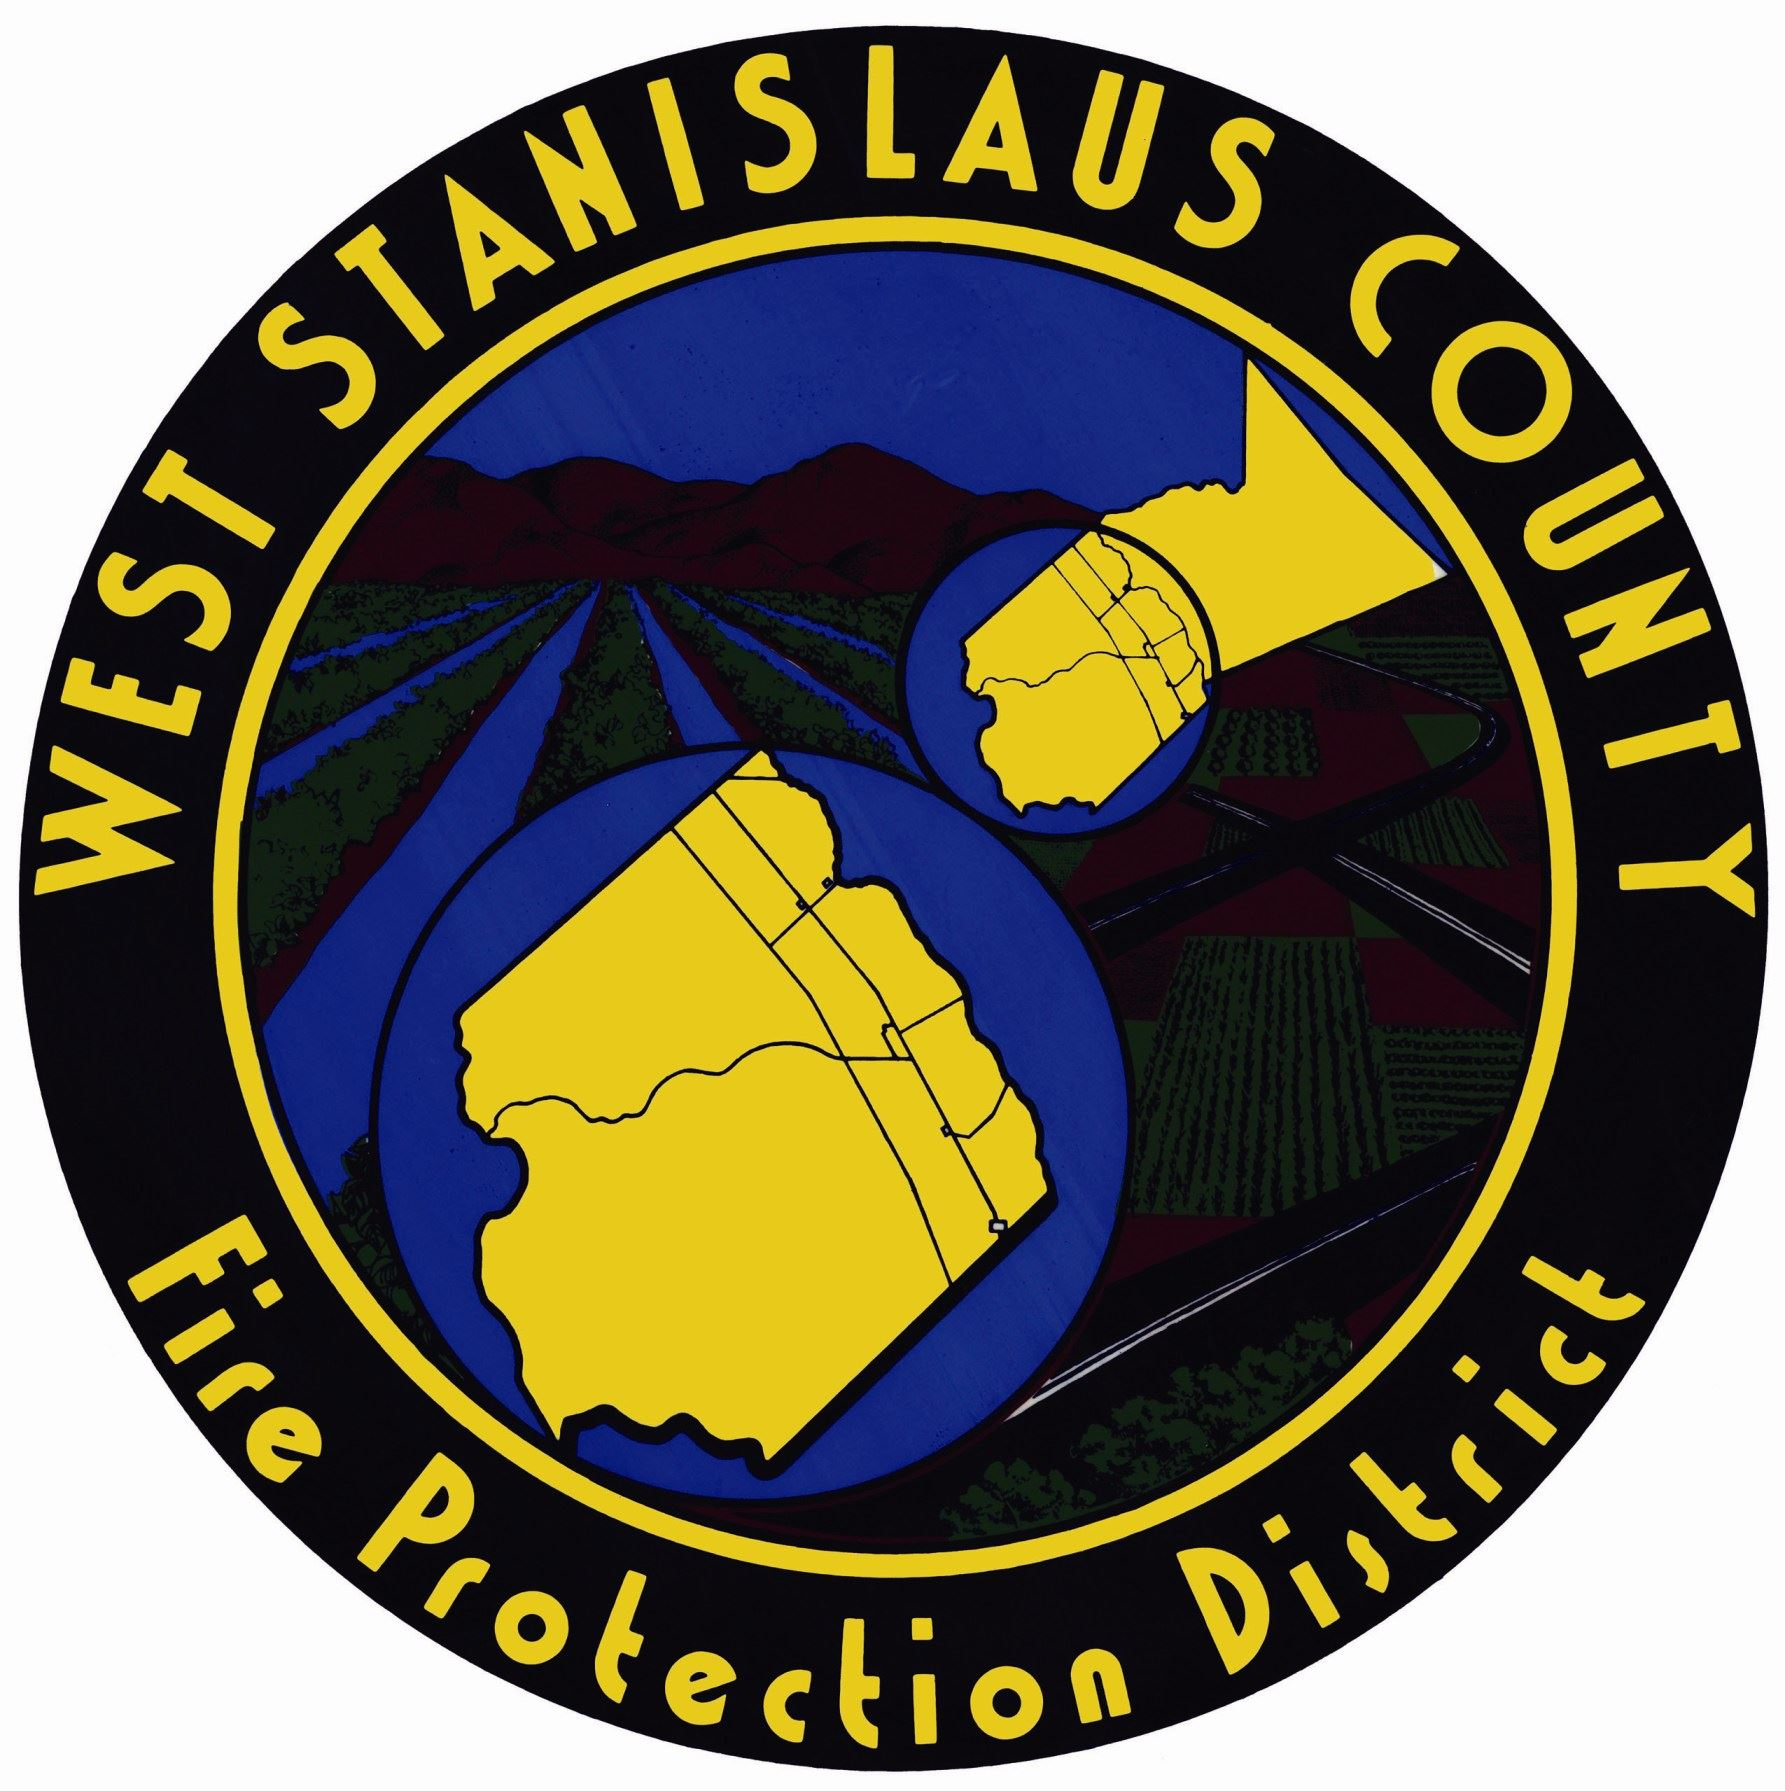 West Stanislaus County Fire Protection District